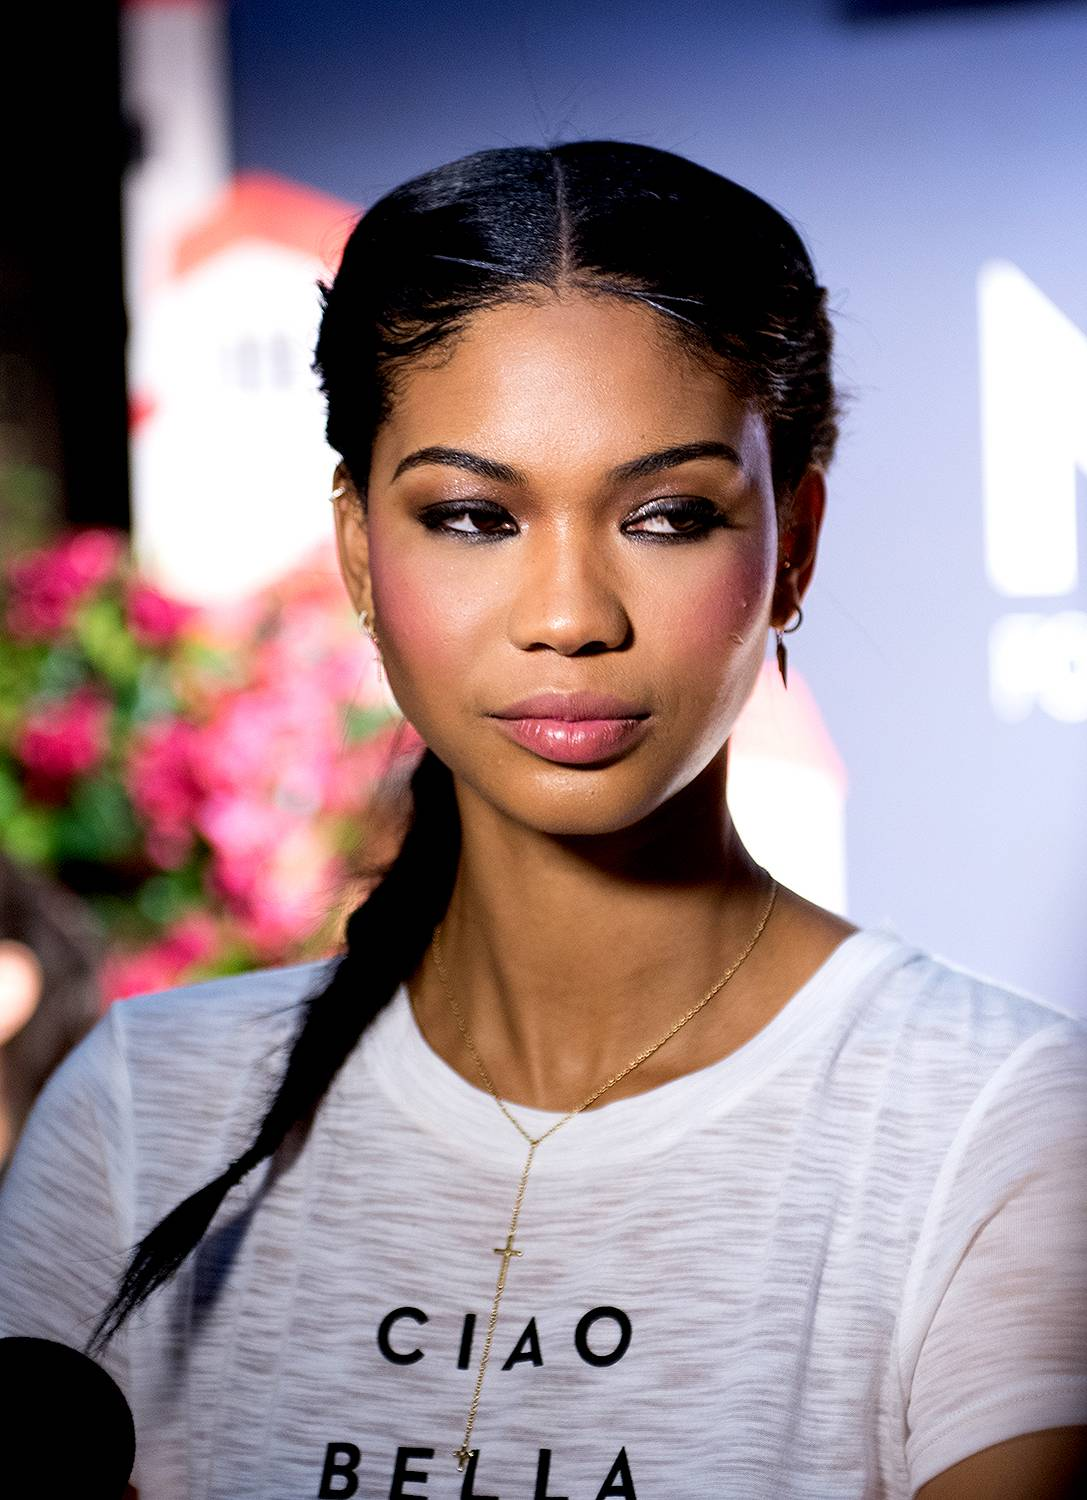 Chanel Iman - The skies opened up and created the future of modeling. We're grateful for this beauty, whose name immediately reminds us of iconic fashion greatness.  (Photo: Noam Galai/Getty Images)